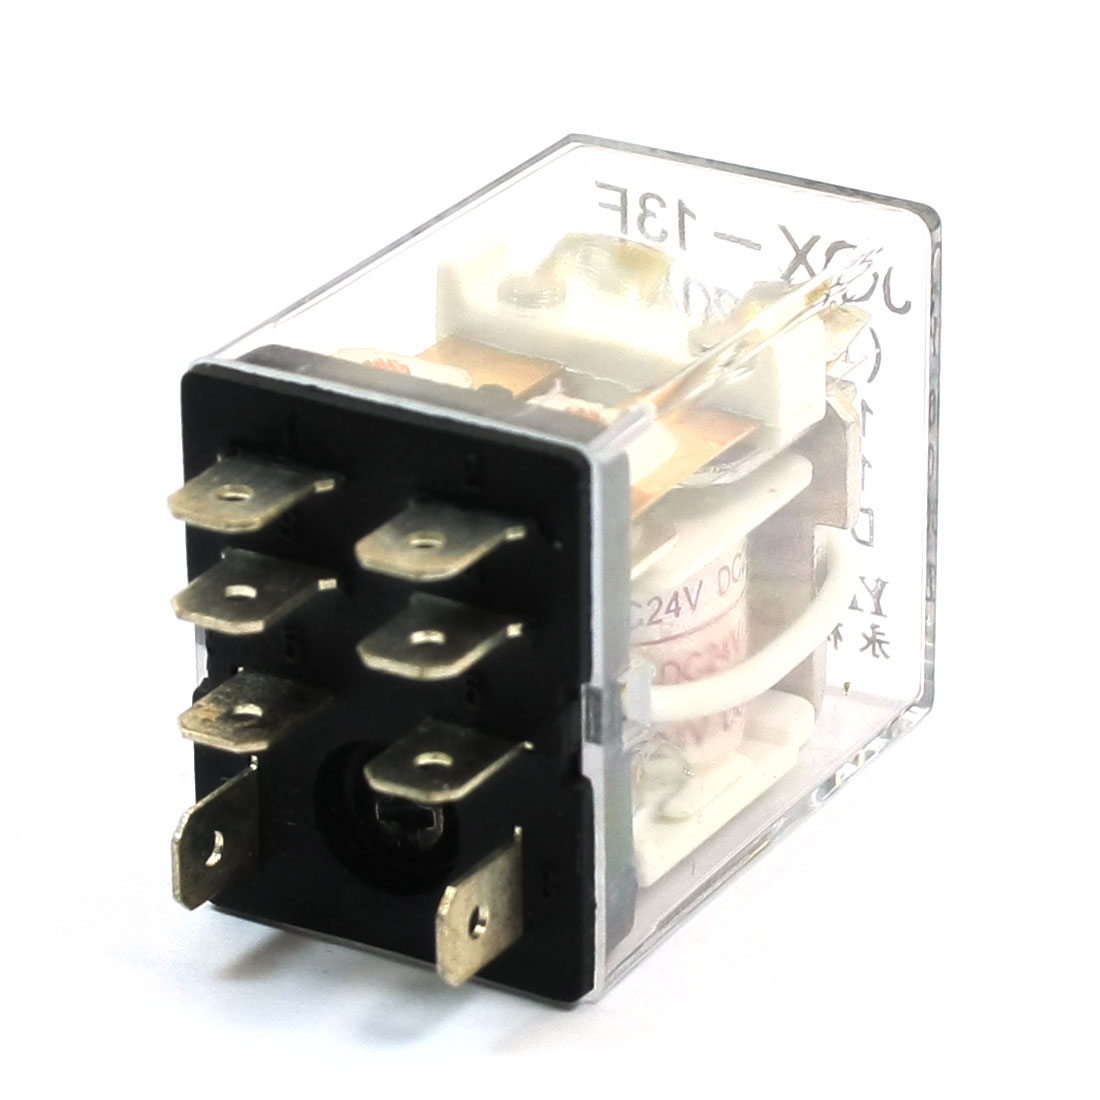 JQX-13F-2C-24 DPDT 8 Pin Electromagnetic Relay DC 24V Rating Coil